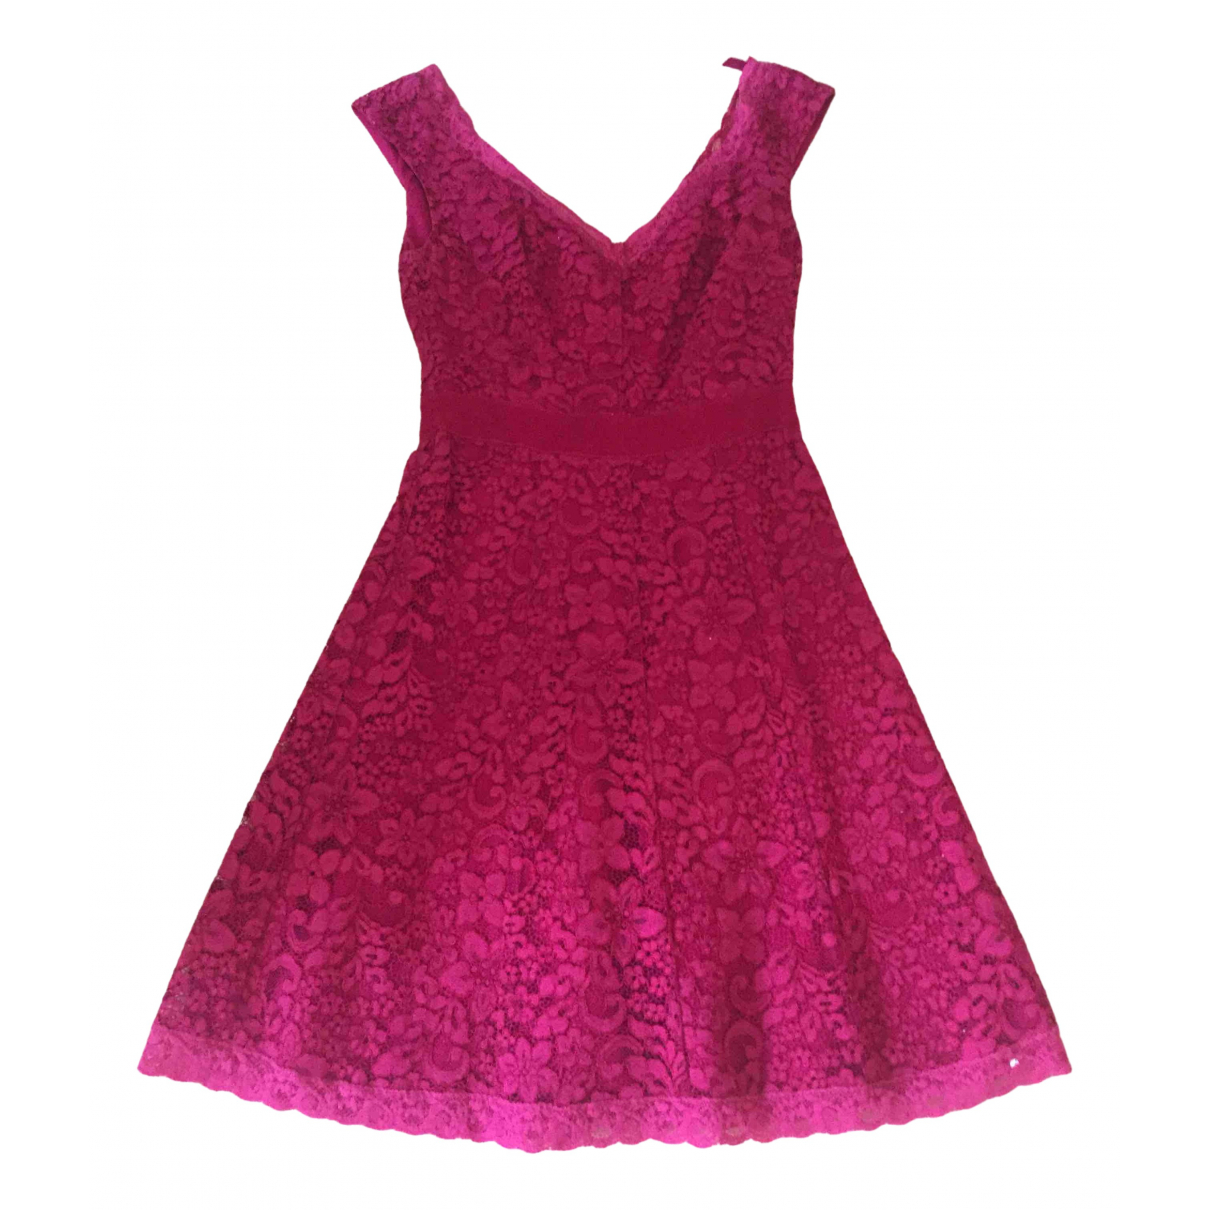 Liu.jo \N Pink Lace dress for Women 40 IT